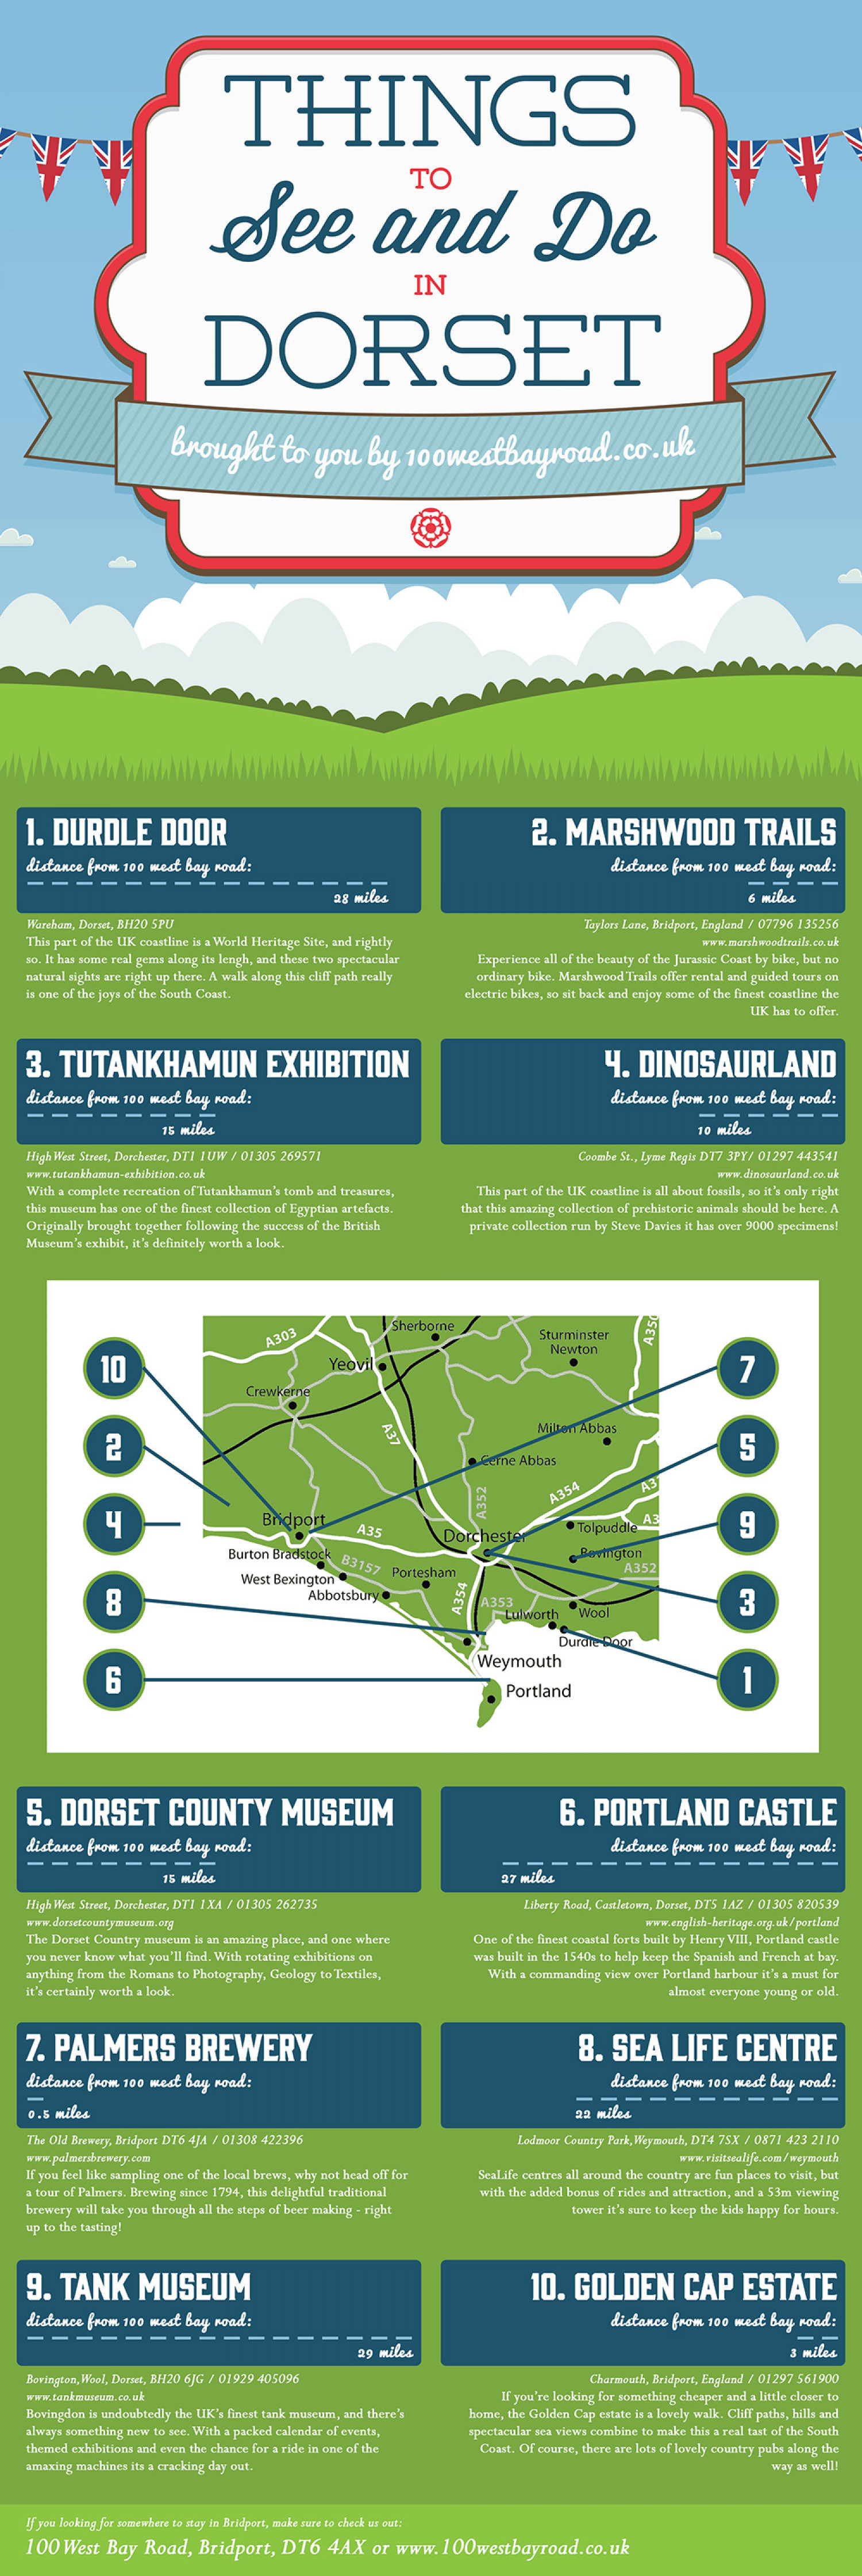 Things To See And Do In Dorset Infographic